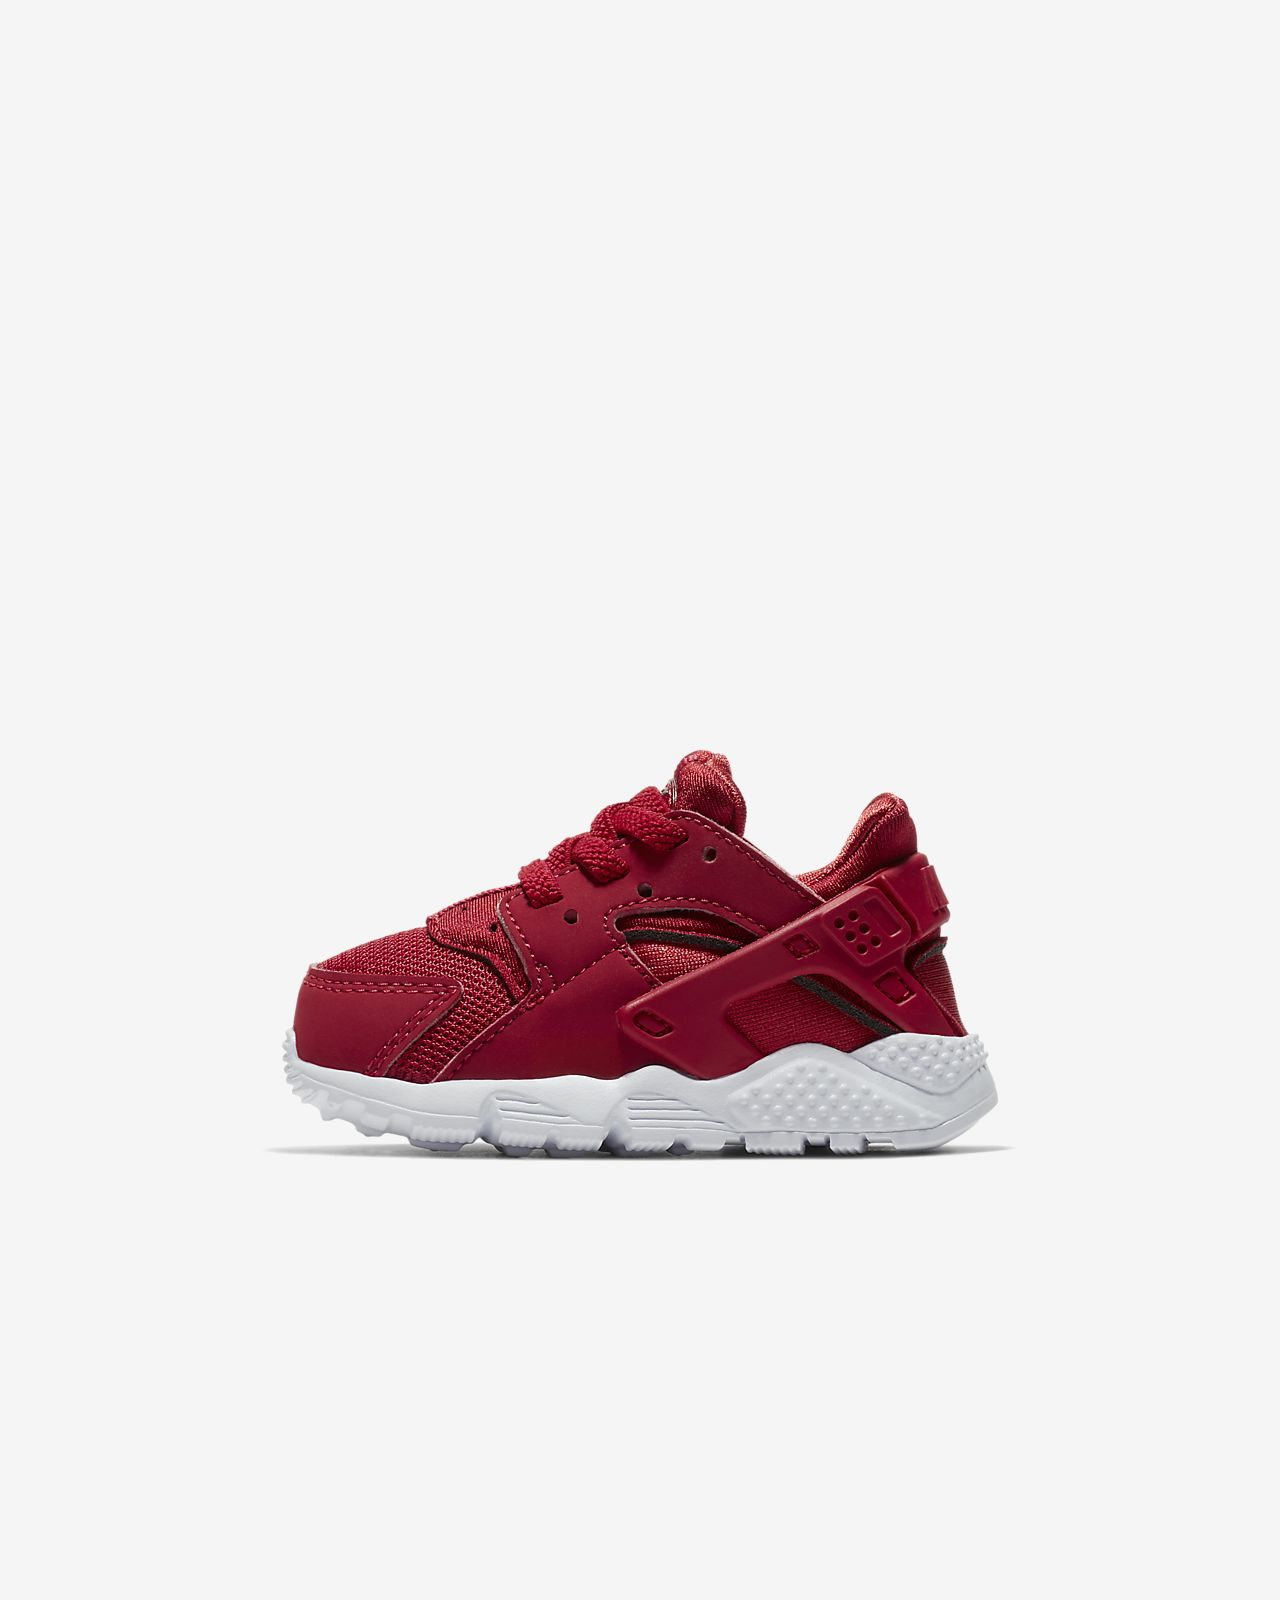 ... Nike Huarache Infant/Toddler Shoe